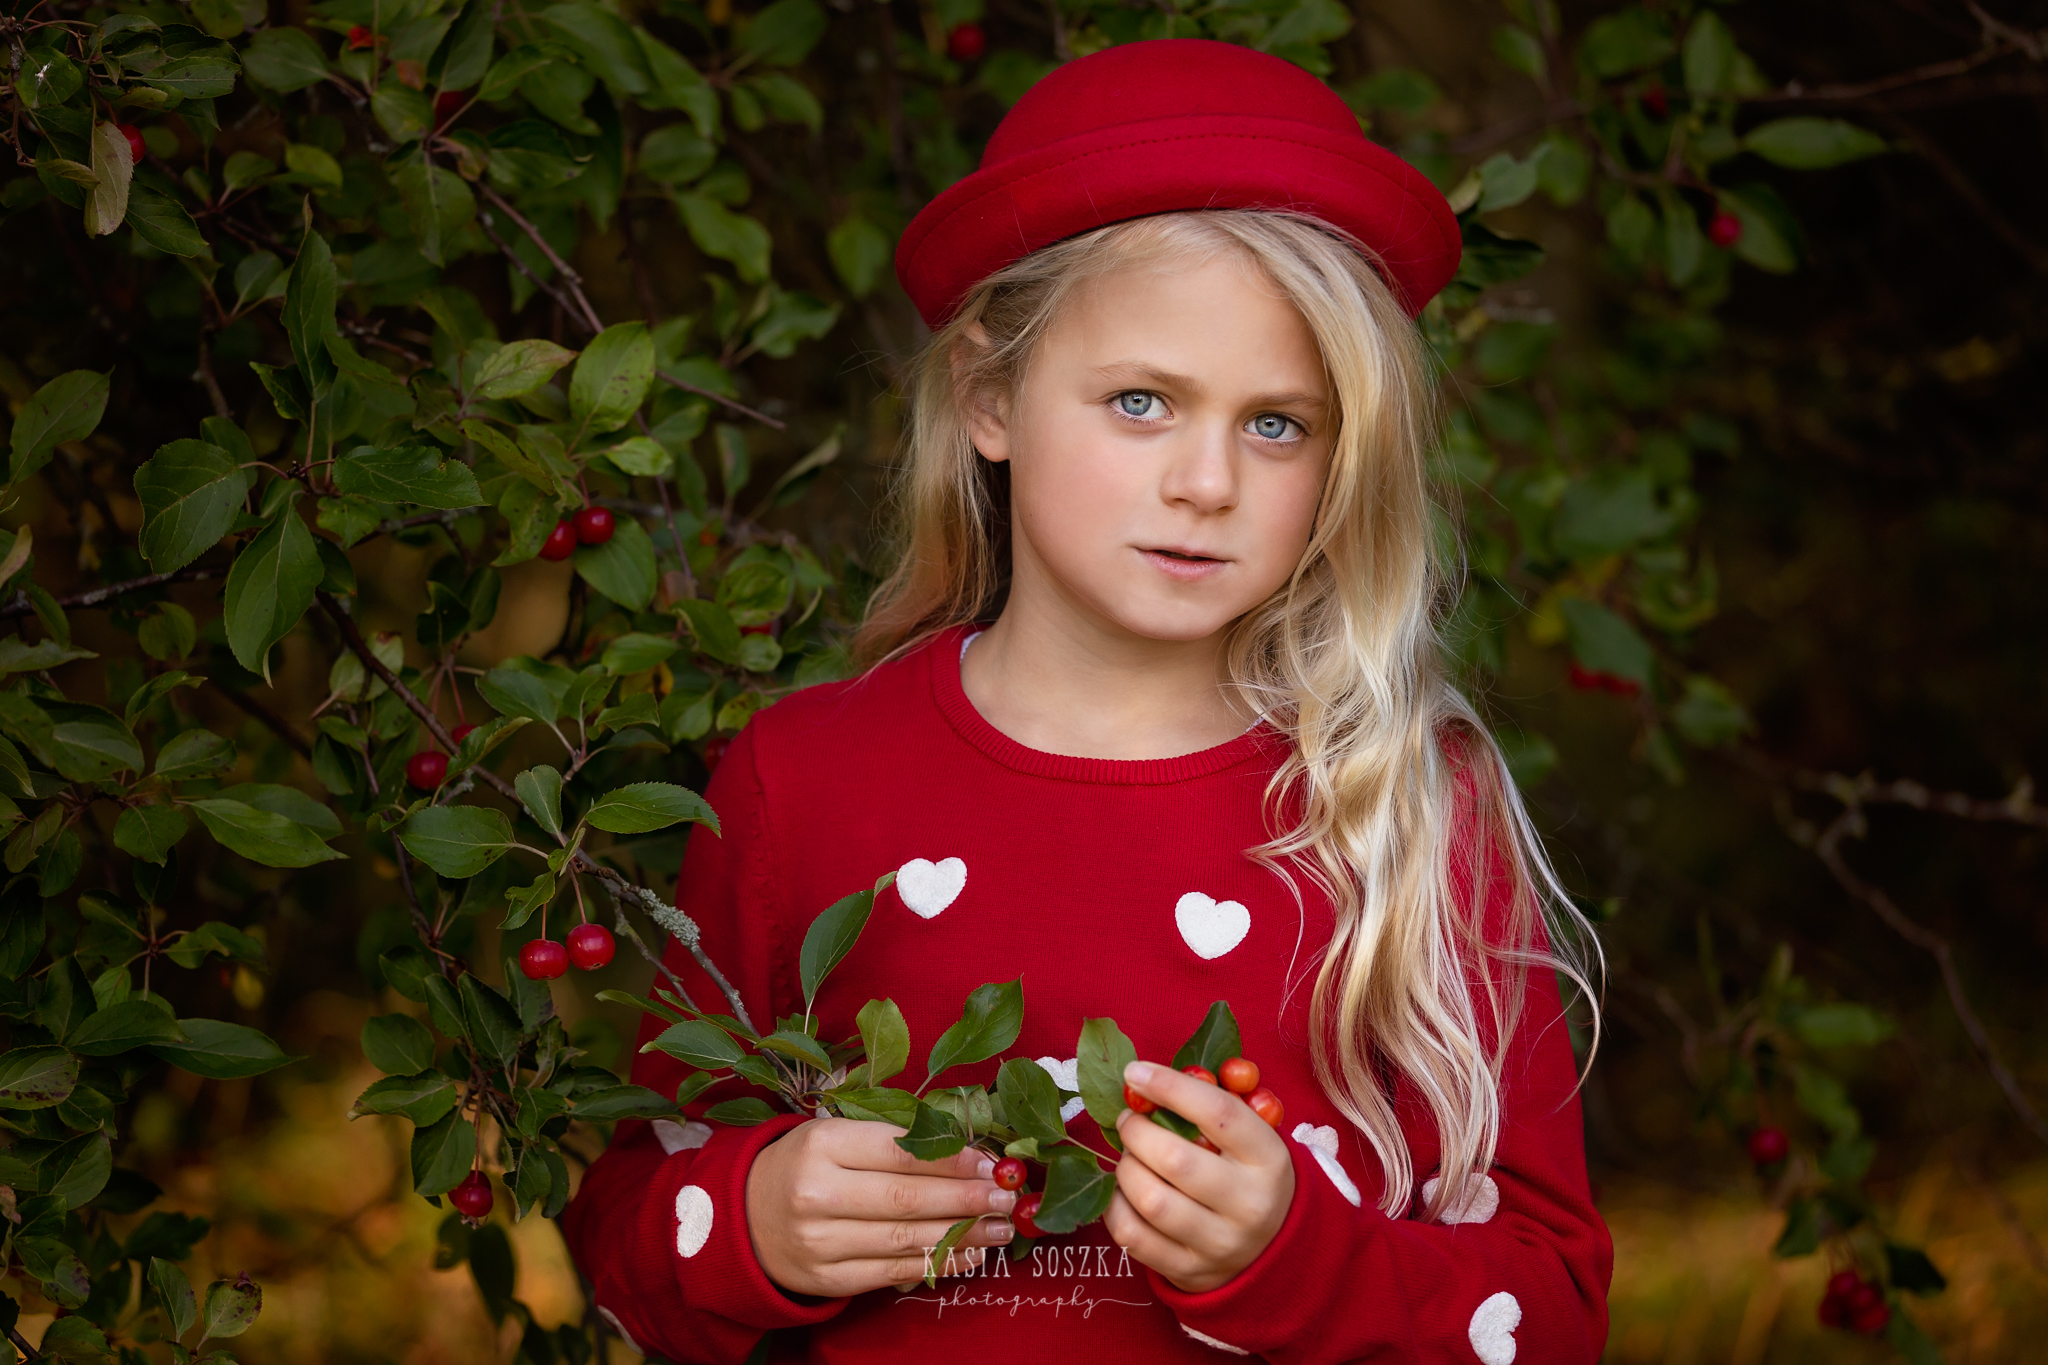 Child photography, child photographer Leeds, York, Bradford, Harrogate: pretty blond girl in red holding a berry tree branch